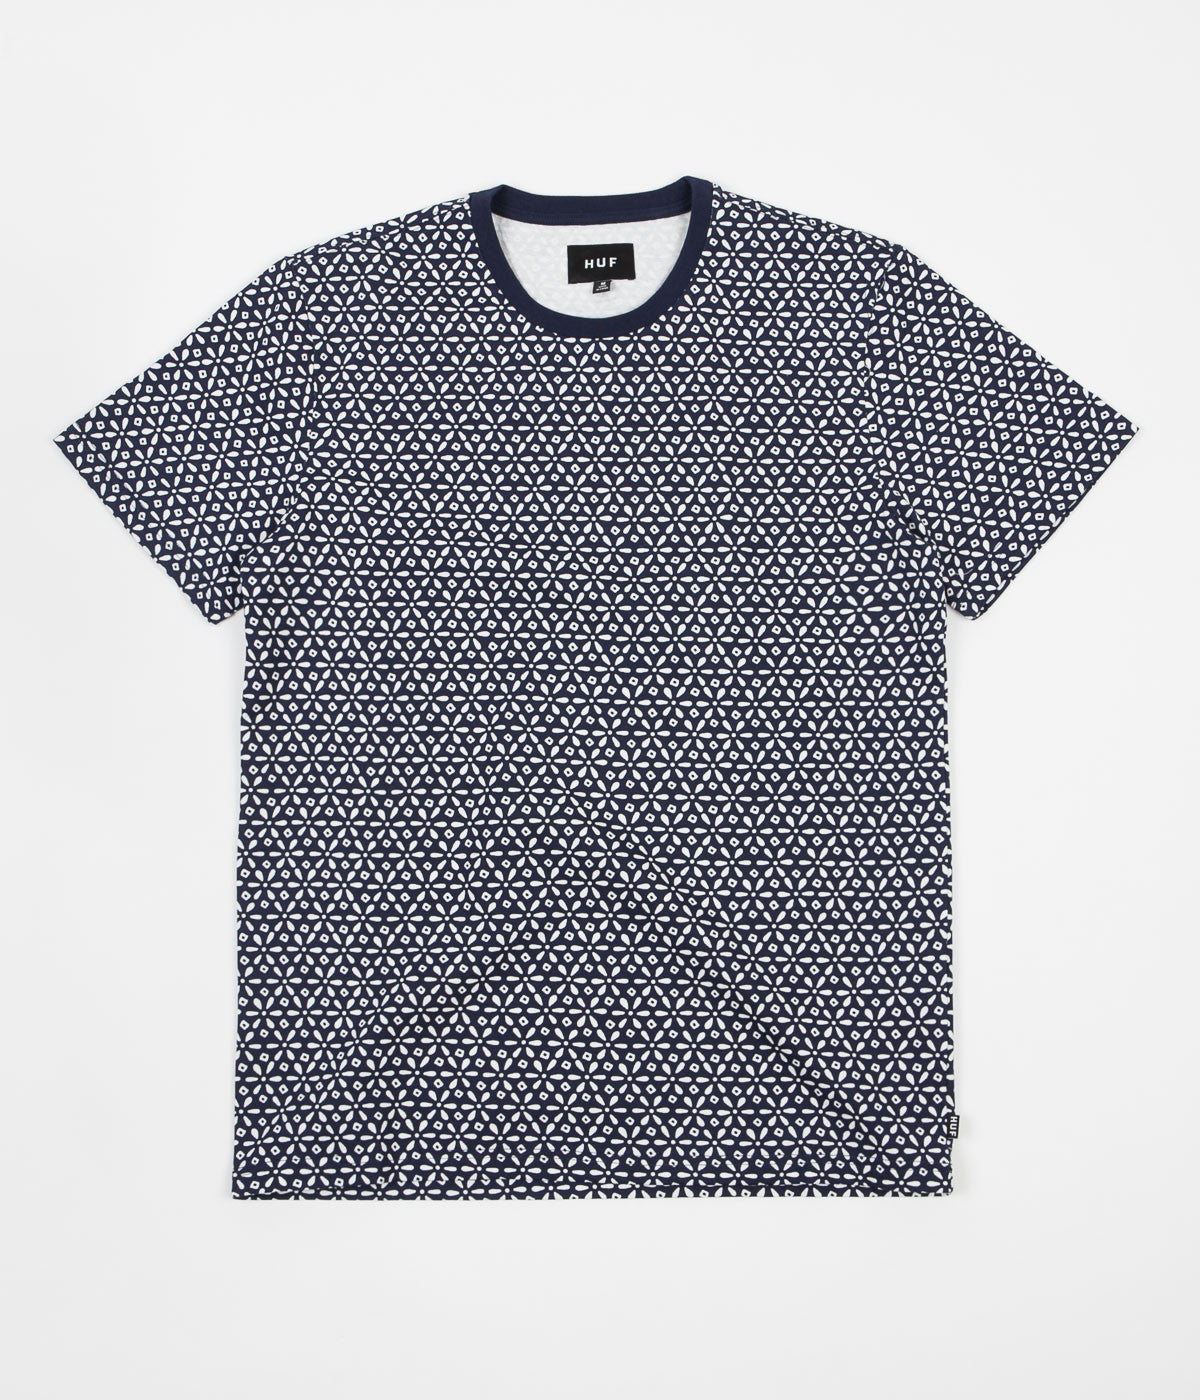 HUF Surfs Down T-Shirt - Navy